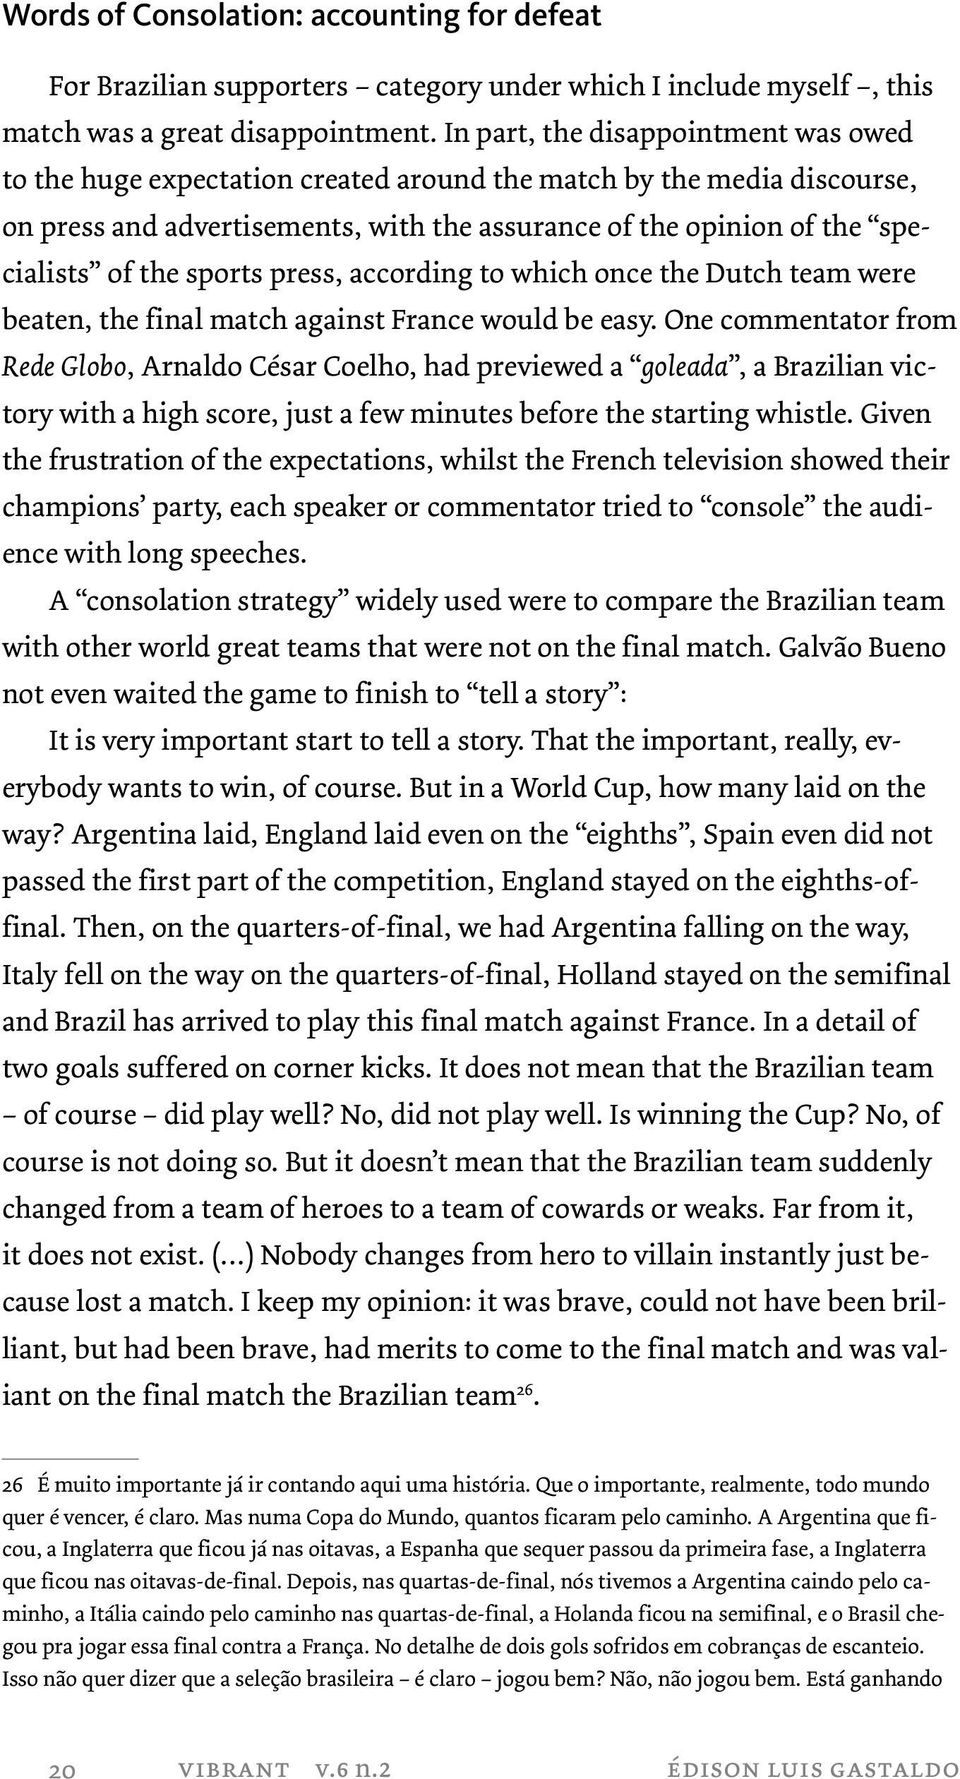 sports press, according to which once the Dutch team were beaten, the final match against France would be easy.